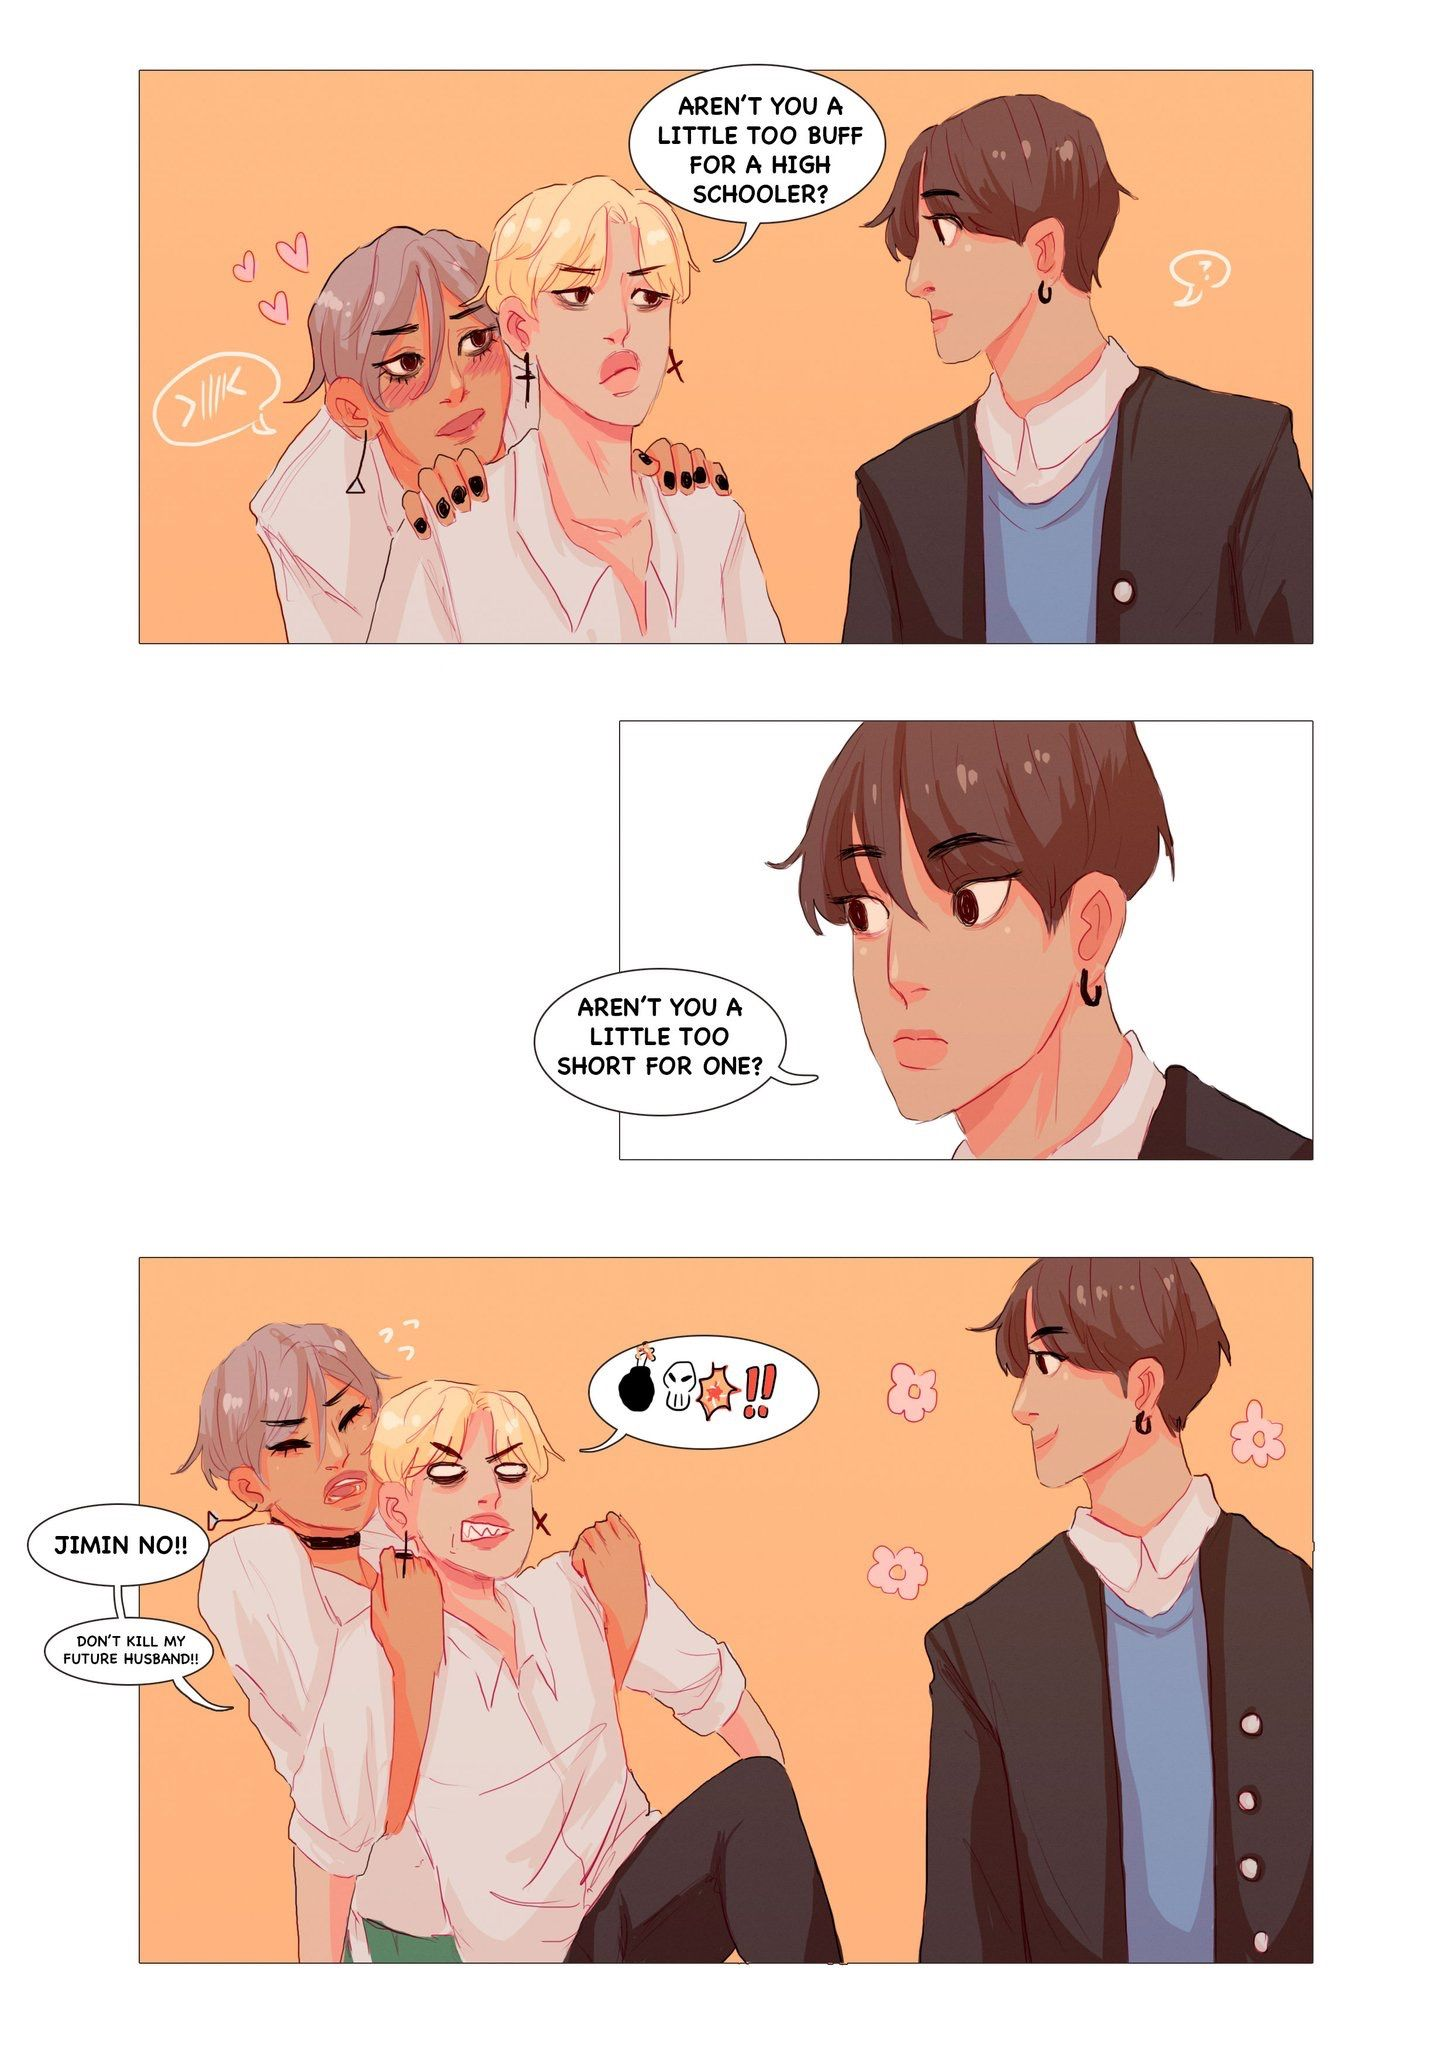 Pin By Bottomtae On Vkooktaekook Bottomtae Only In 2019 Bts